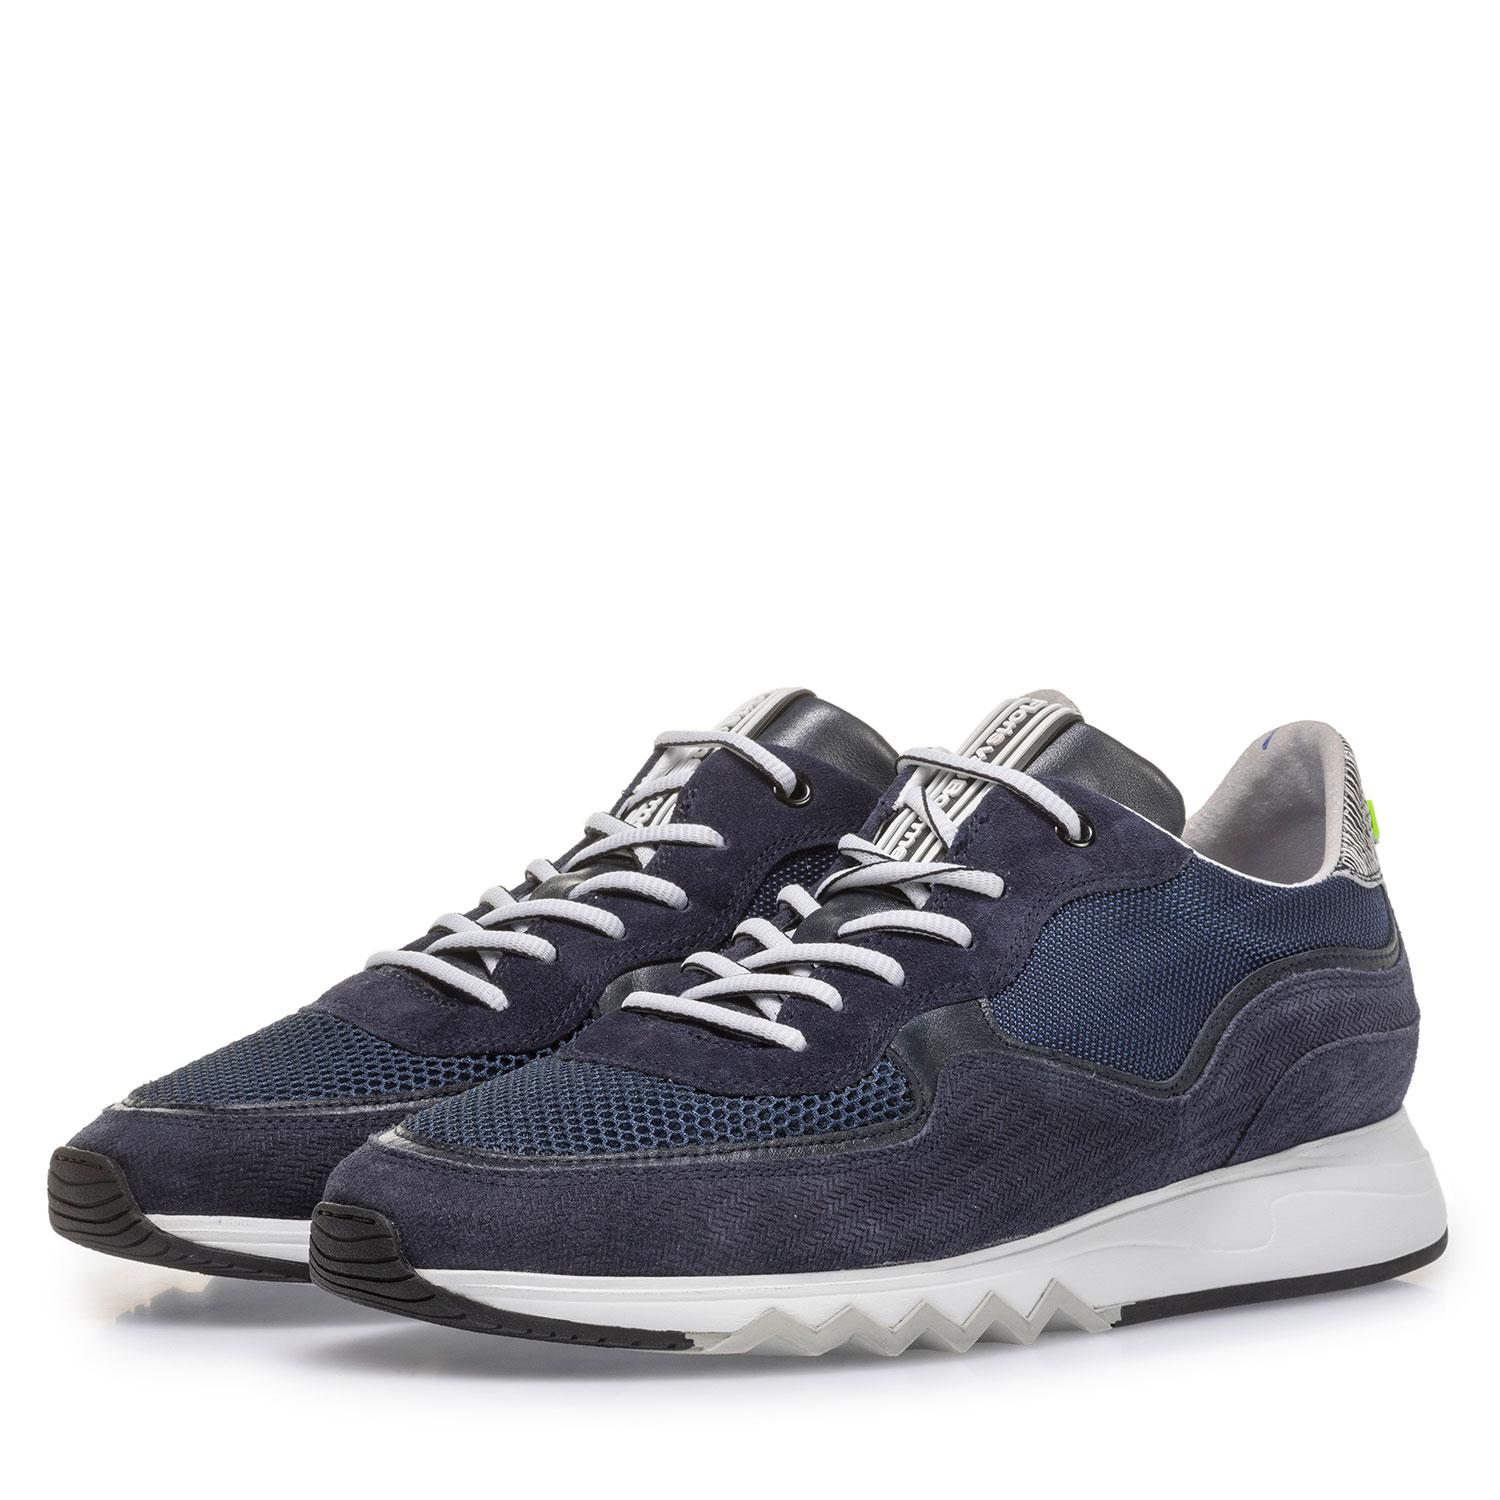 16093/19 - Dark blue suede leather sneaker with print